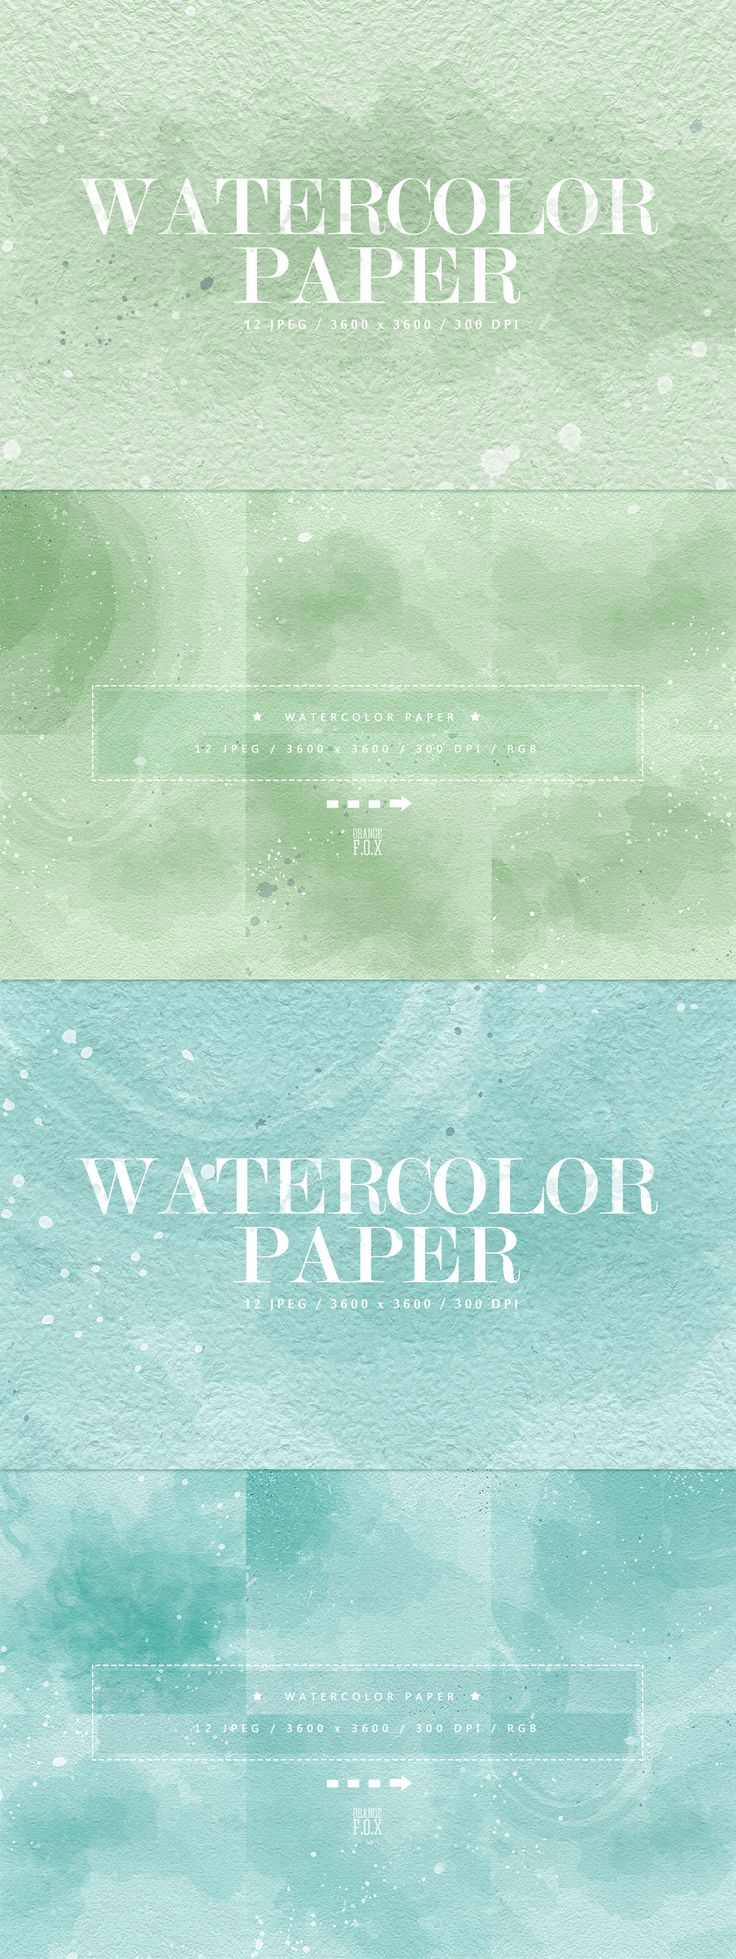 12 Watercolor Papers by OrangeFox on @creativemarket  #watercolor #texture #watercolor #background #watercolor #paper #watercolor #digital #paper #digital #paper #texture #background #hand #painted #dirty #stained #grungy #scrapbook #card #background #watercolor #brush #painted #abstract #blue #white #green #watercolor #blue #watercolor # #creativemarket #graphic #wallpaper